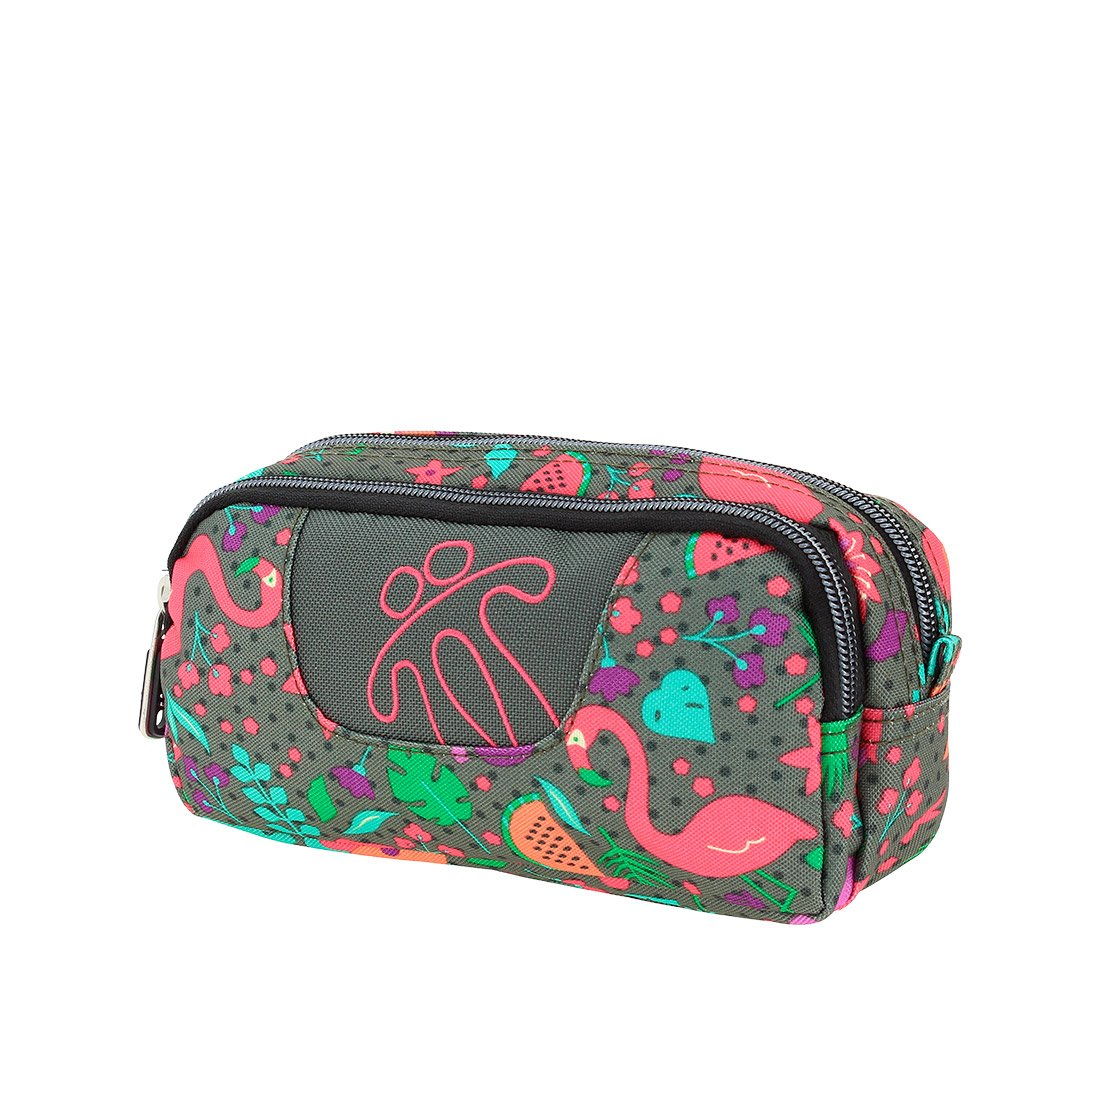 Amazon.com: Totto Sobre Pencil Cases, 23 cm, 1 liters ...